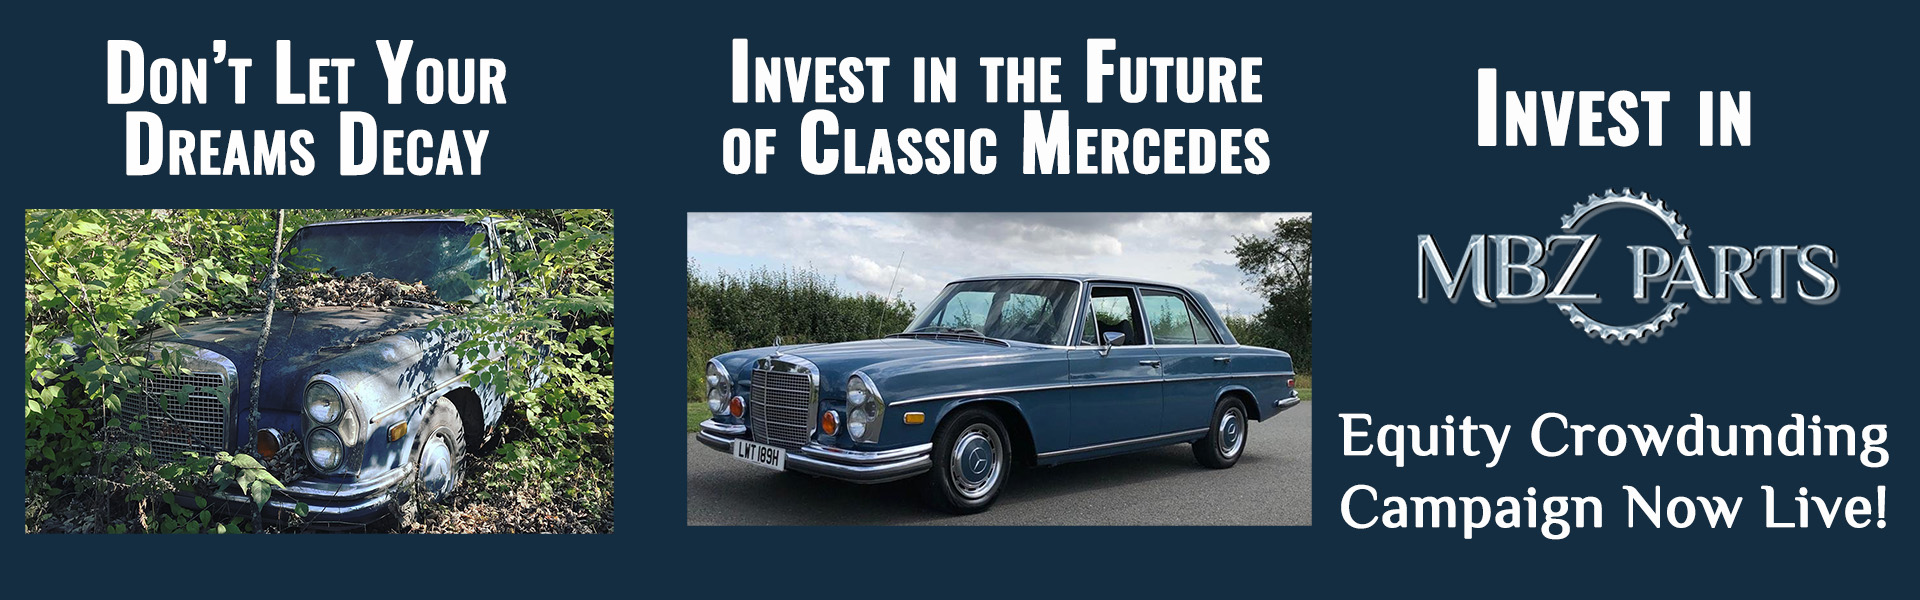 Invest in the Future of Classic Mercedes